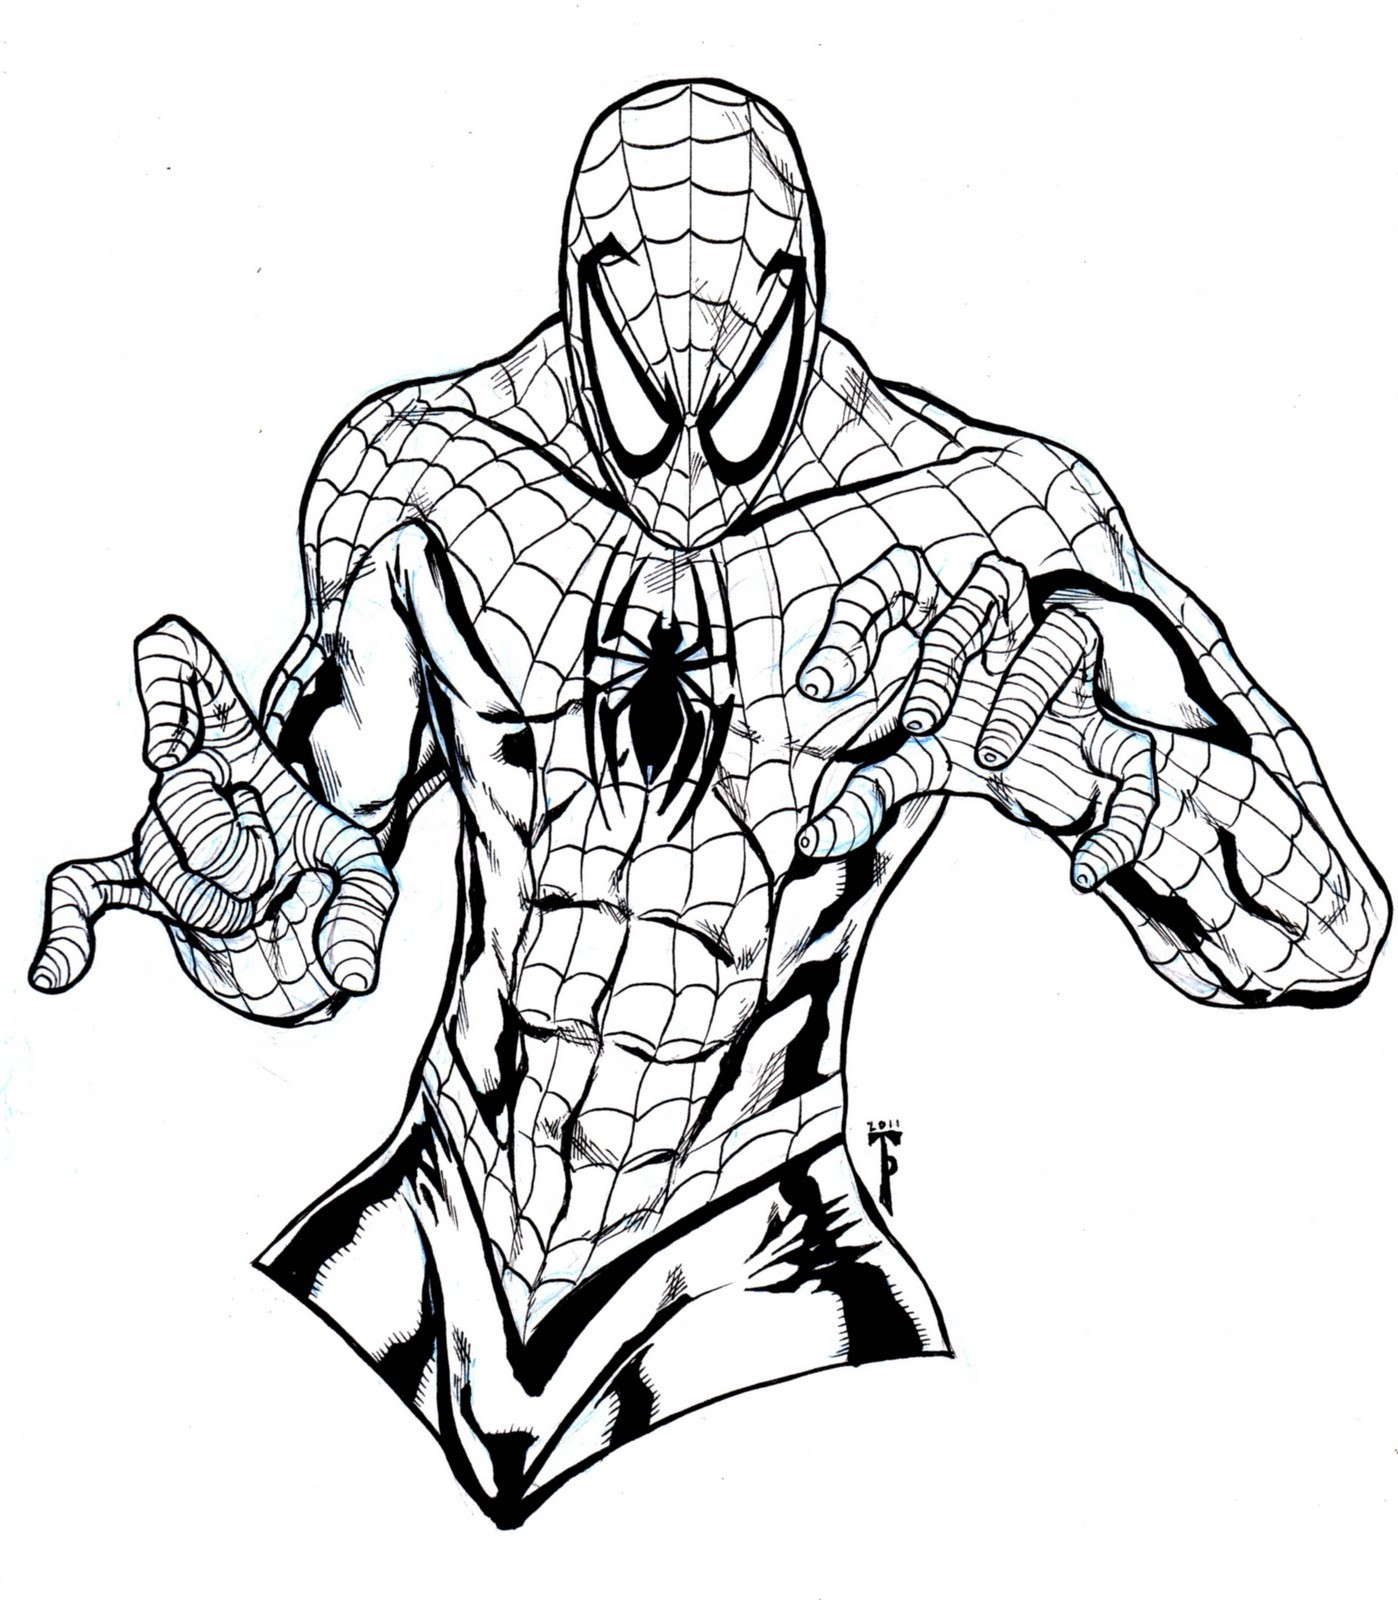 Spider Face Drawing At Getdrawings Com Free For Personal Use